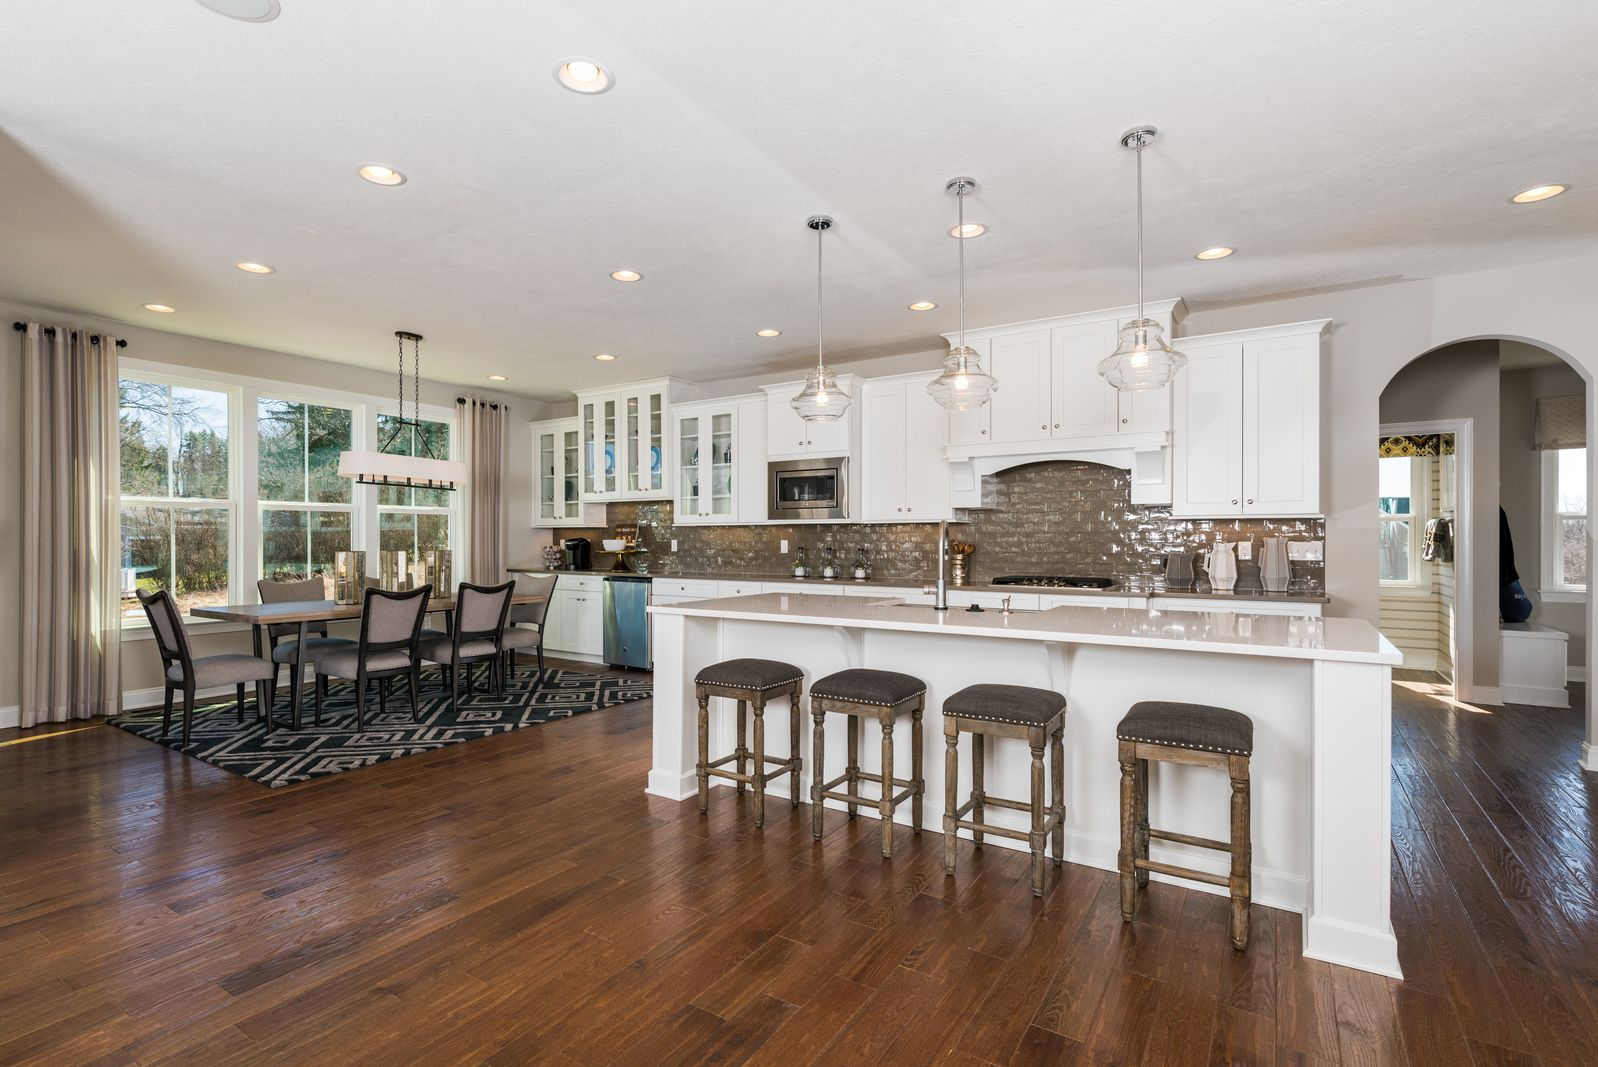 Kitchen featured in the Olsen By HeartlandHomes in Morgantown, WV